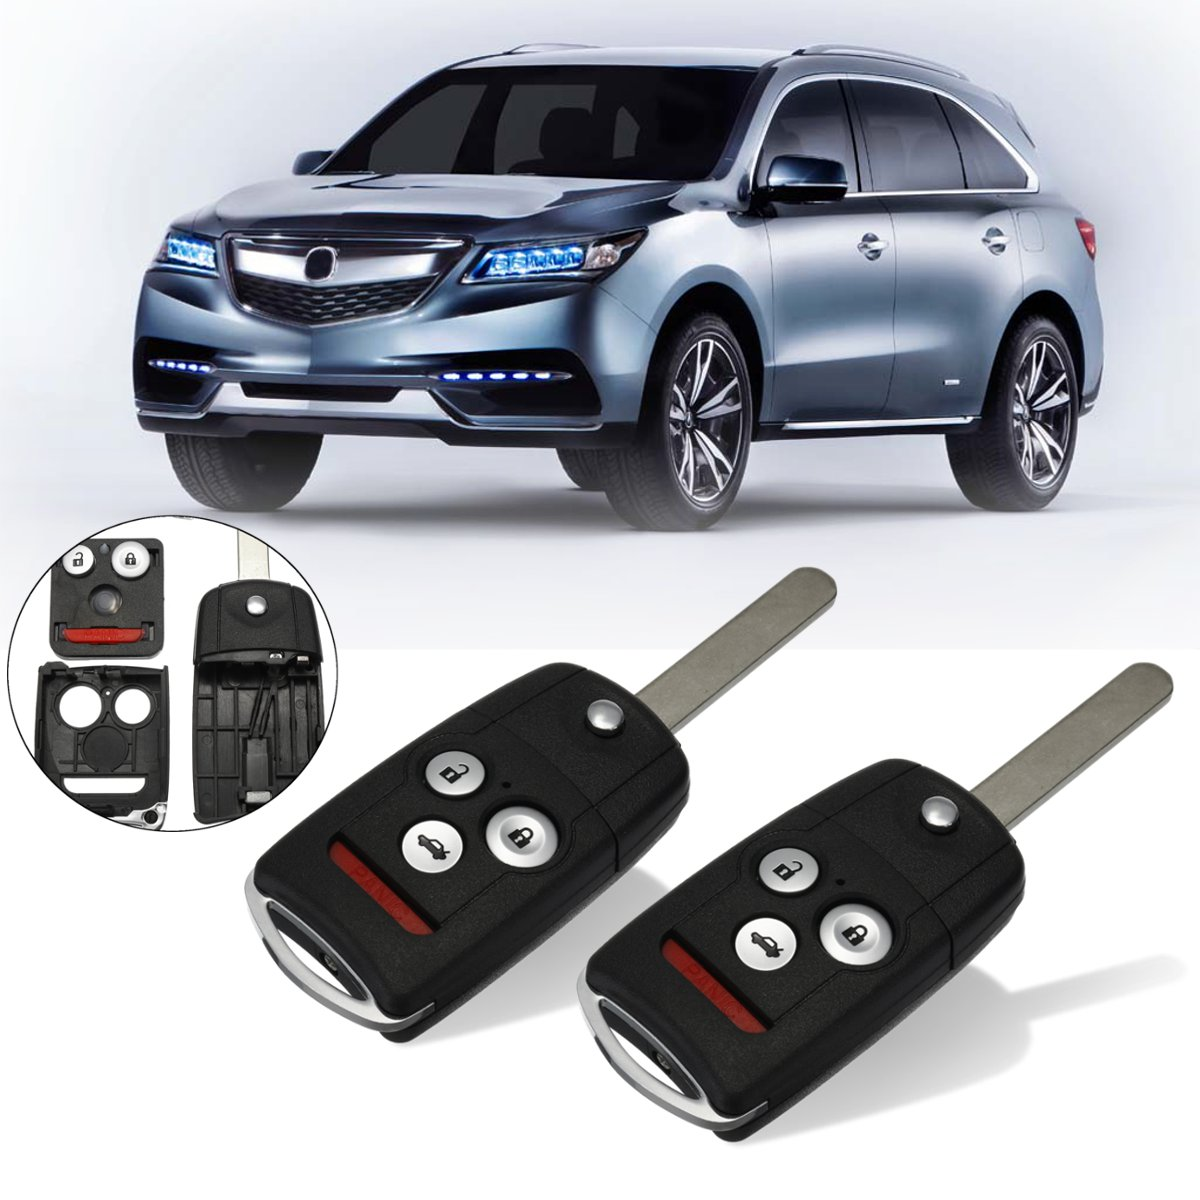 best acura mdx key shell ideas and get free shipping - 8j1dmif3